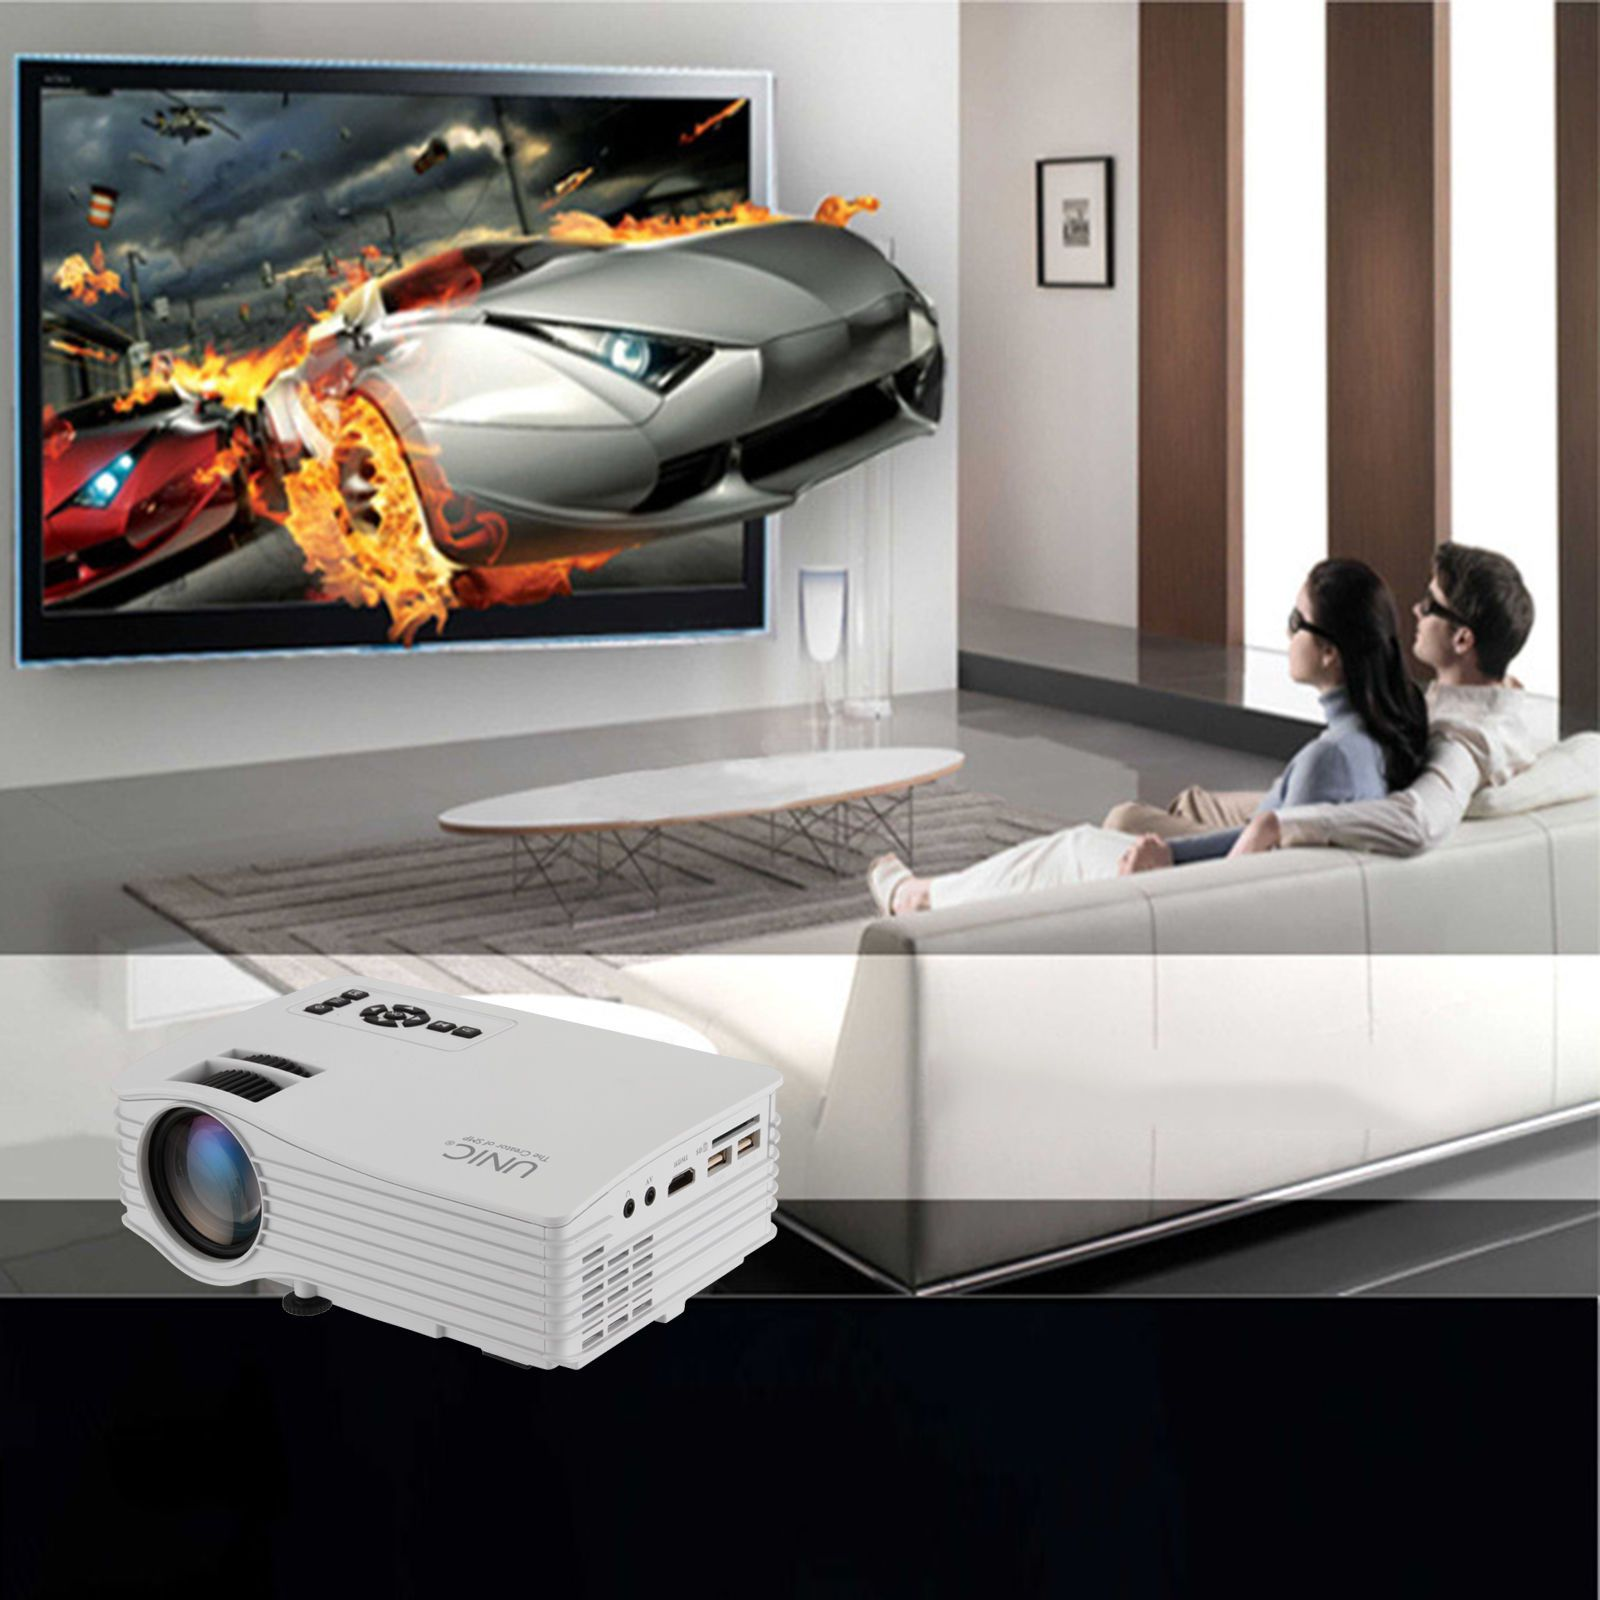 UNIC UC36 LED Projector Full Color 1080P Throw 130-inch Screen Portable Multimedia LED Projector w/ HDMI AV USB for NoteBook Laptop